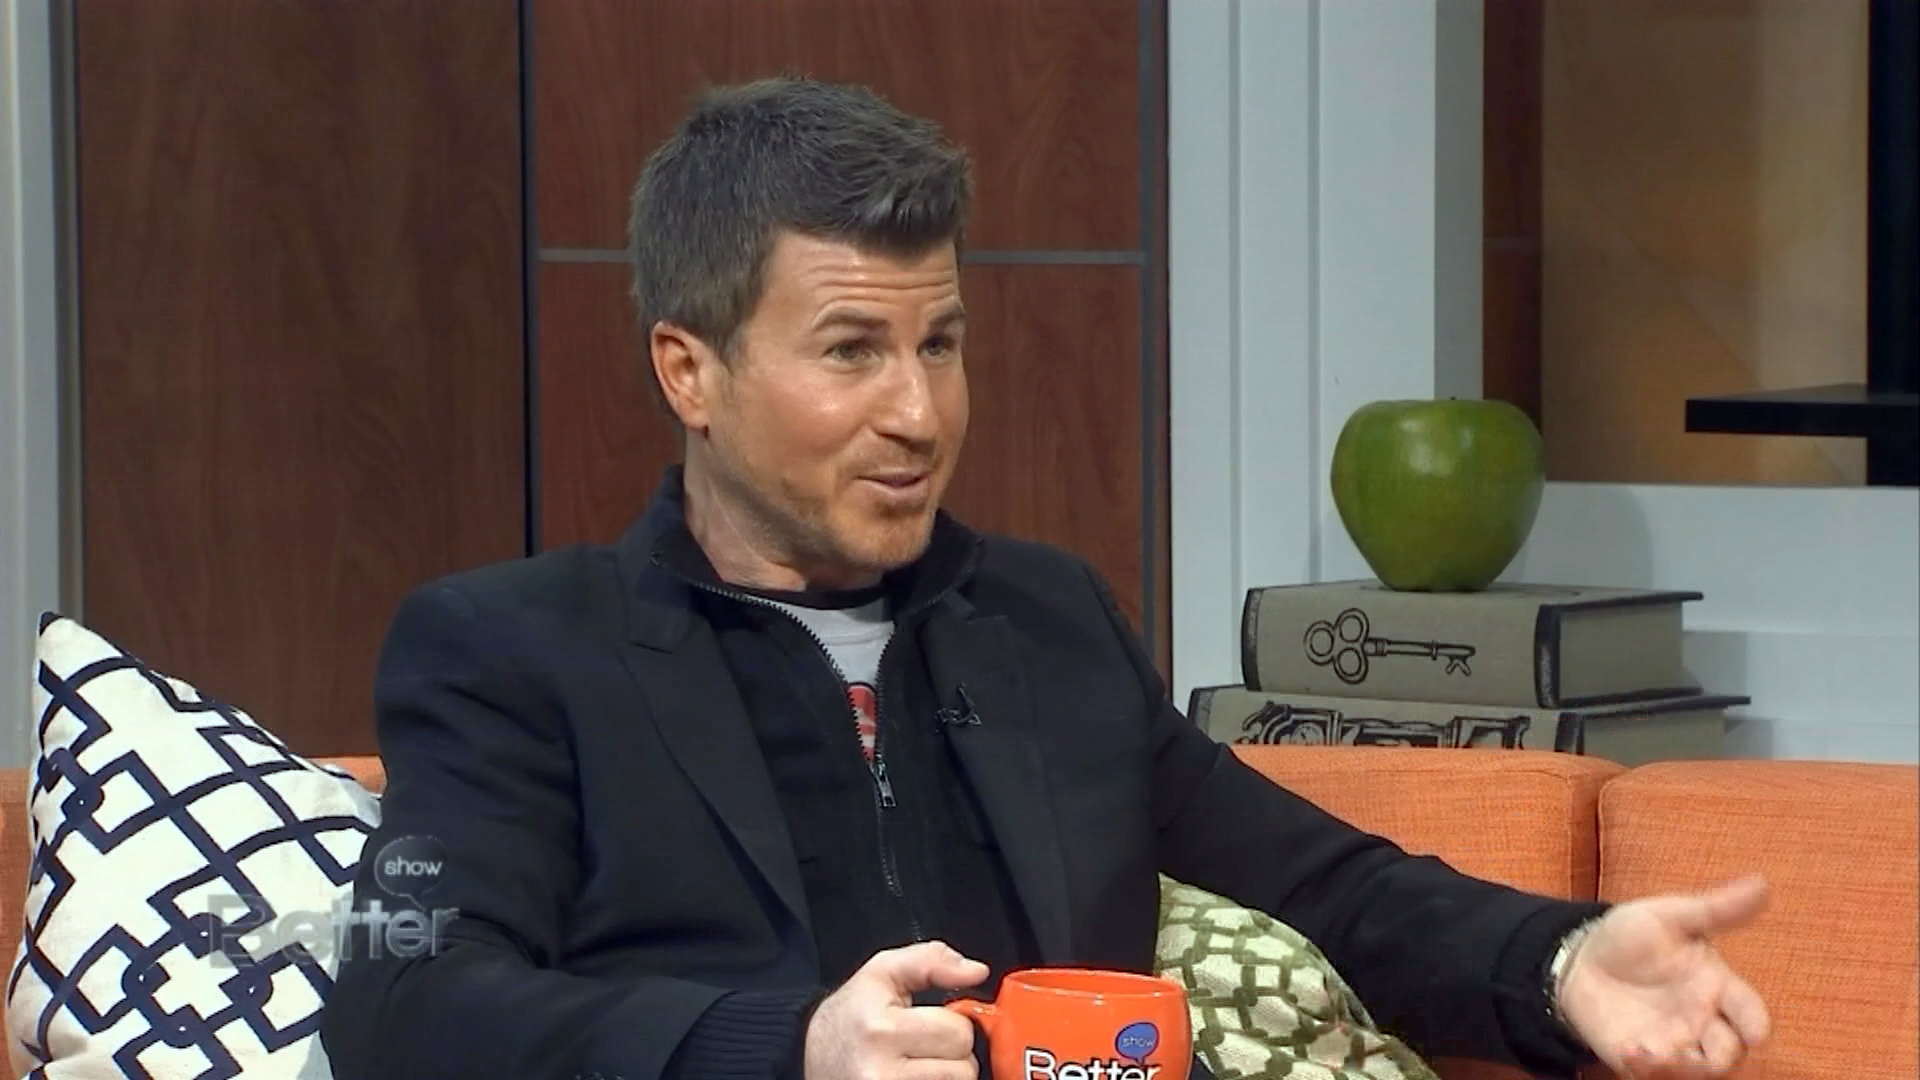 Jason Hervey Talks About His Transitions from Child Actor to Exec Producer